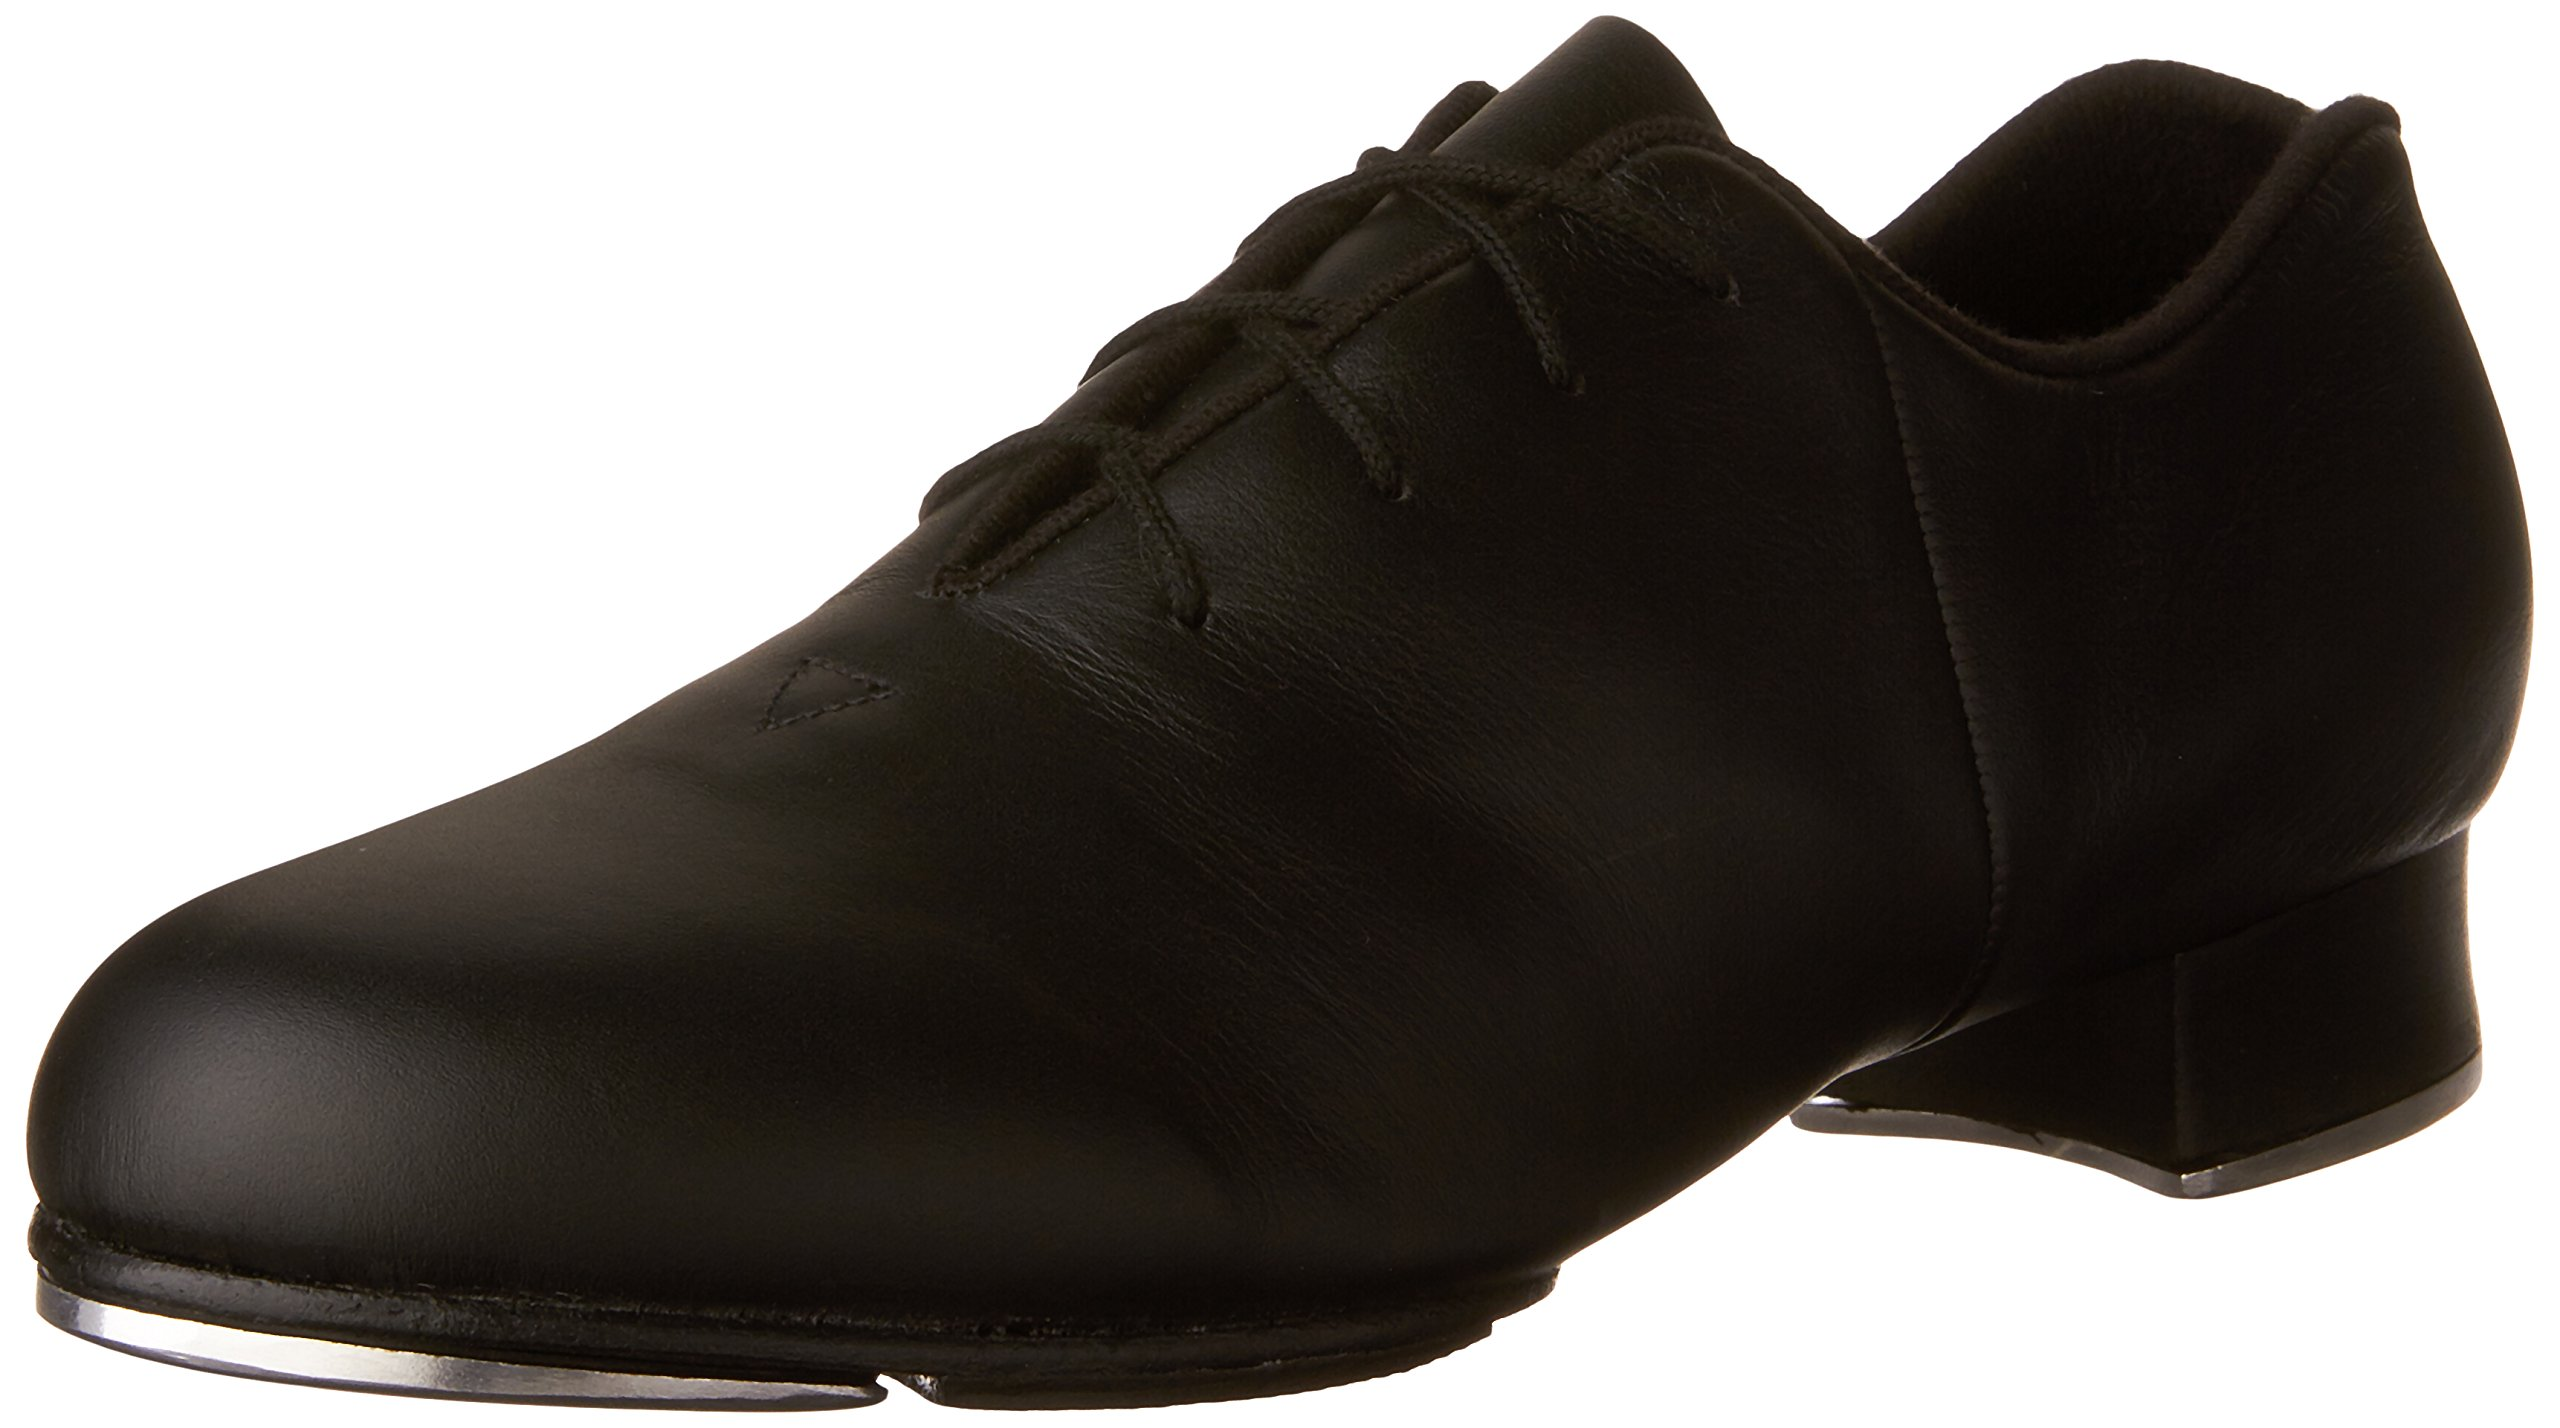 Bloch Women's Tap-Flex, Black, 11 M US by Bloch